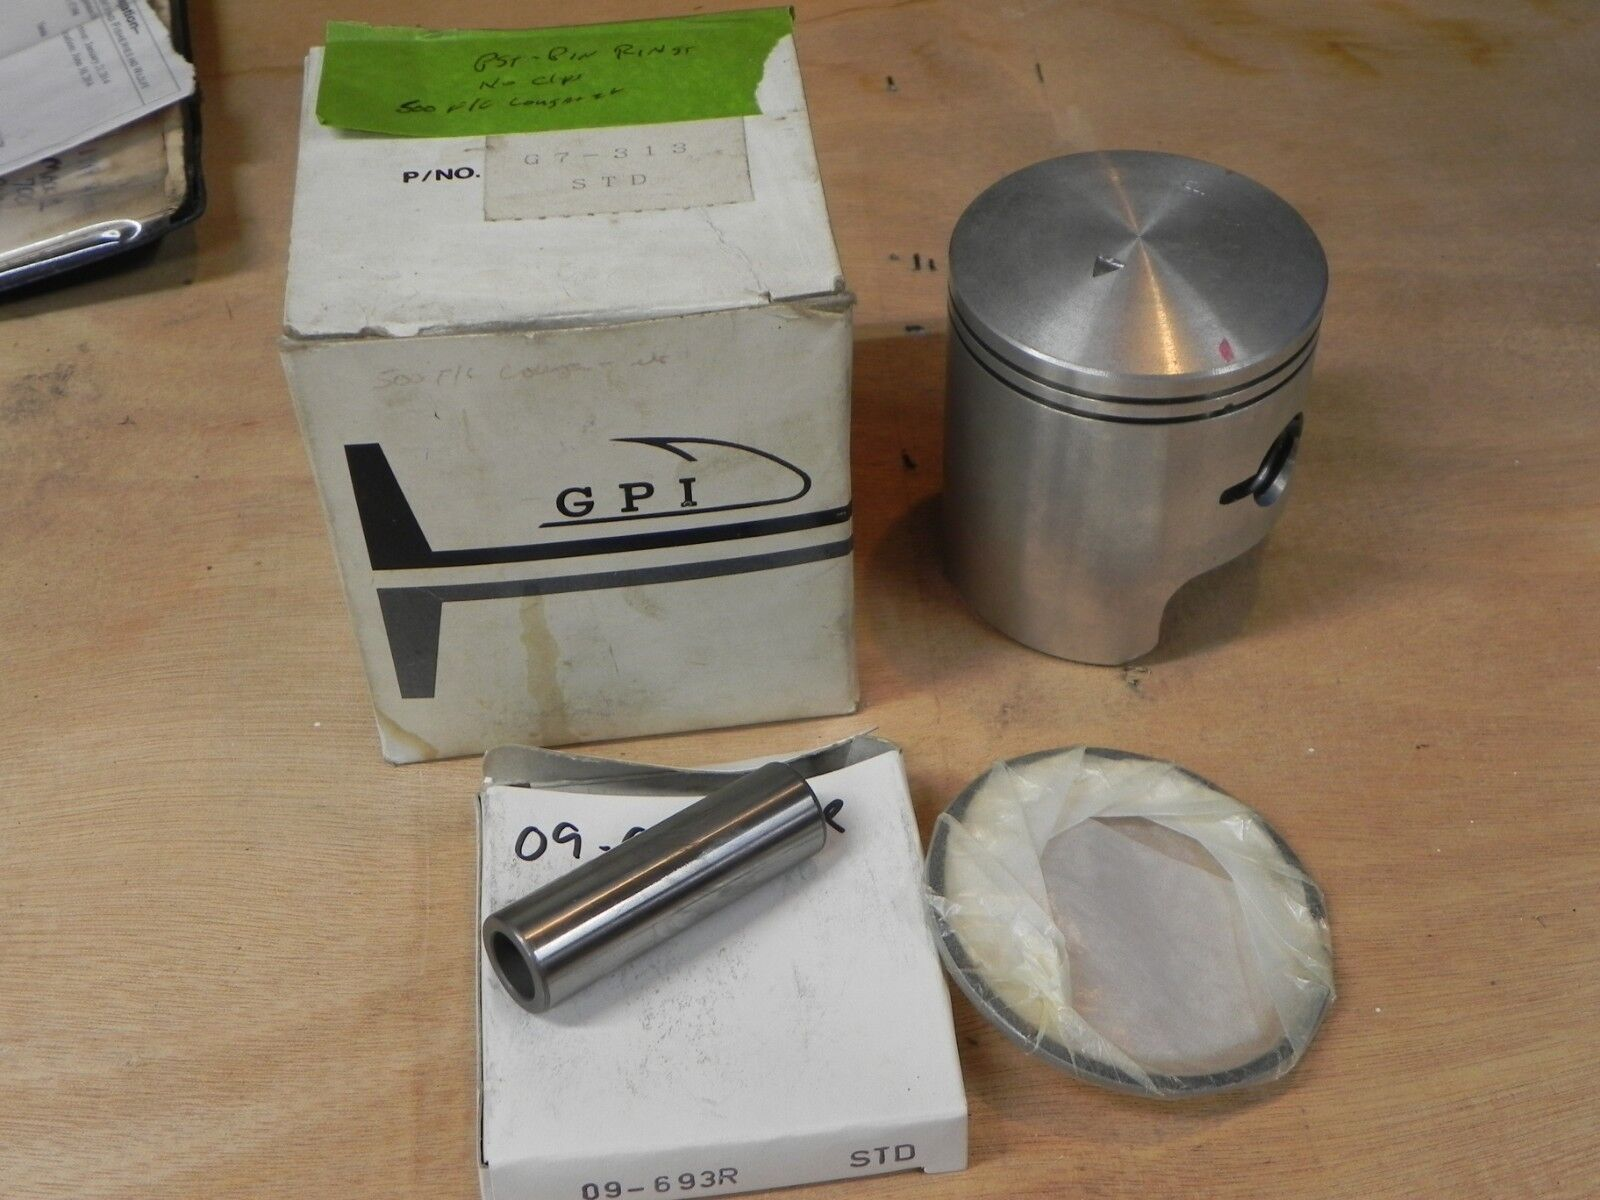 PISTON KIT ARCTIC CAT 500 FAN COOLED & OTHERS GPI BRAND 09 G7-313 MISSING CLIPS